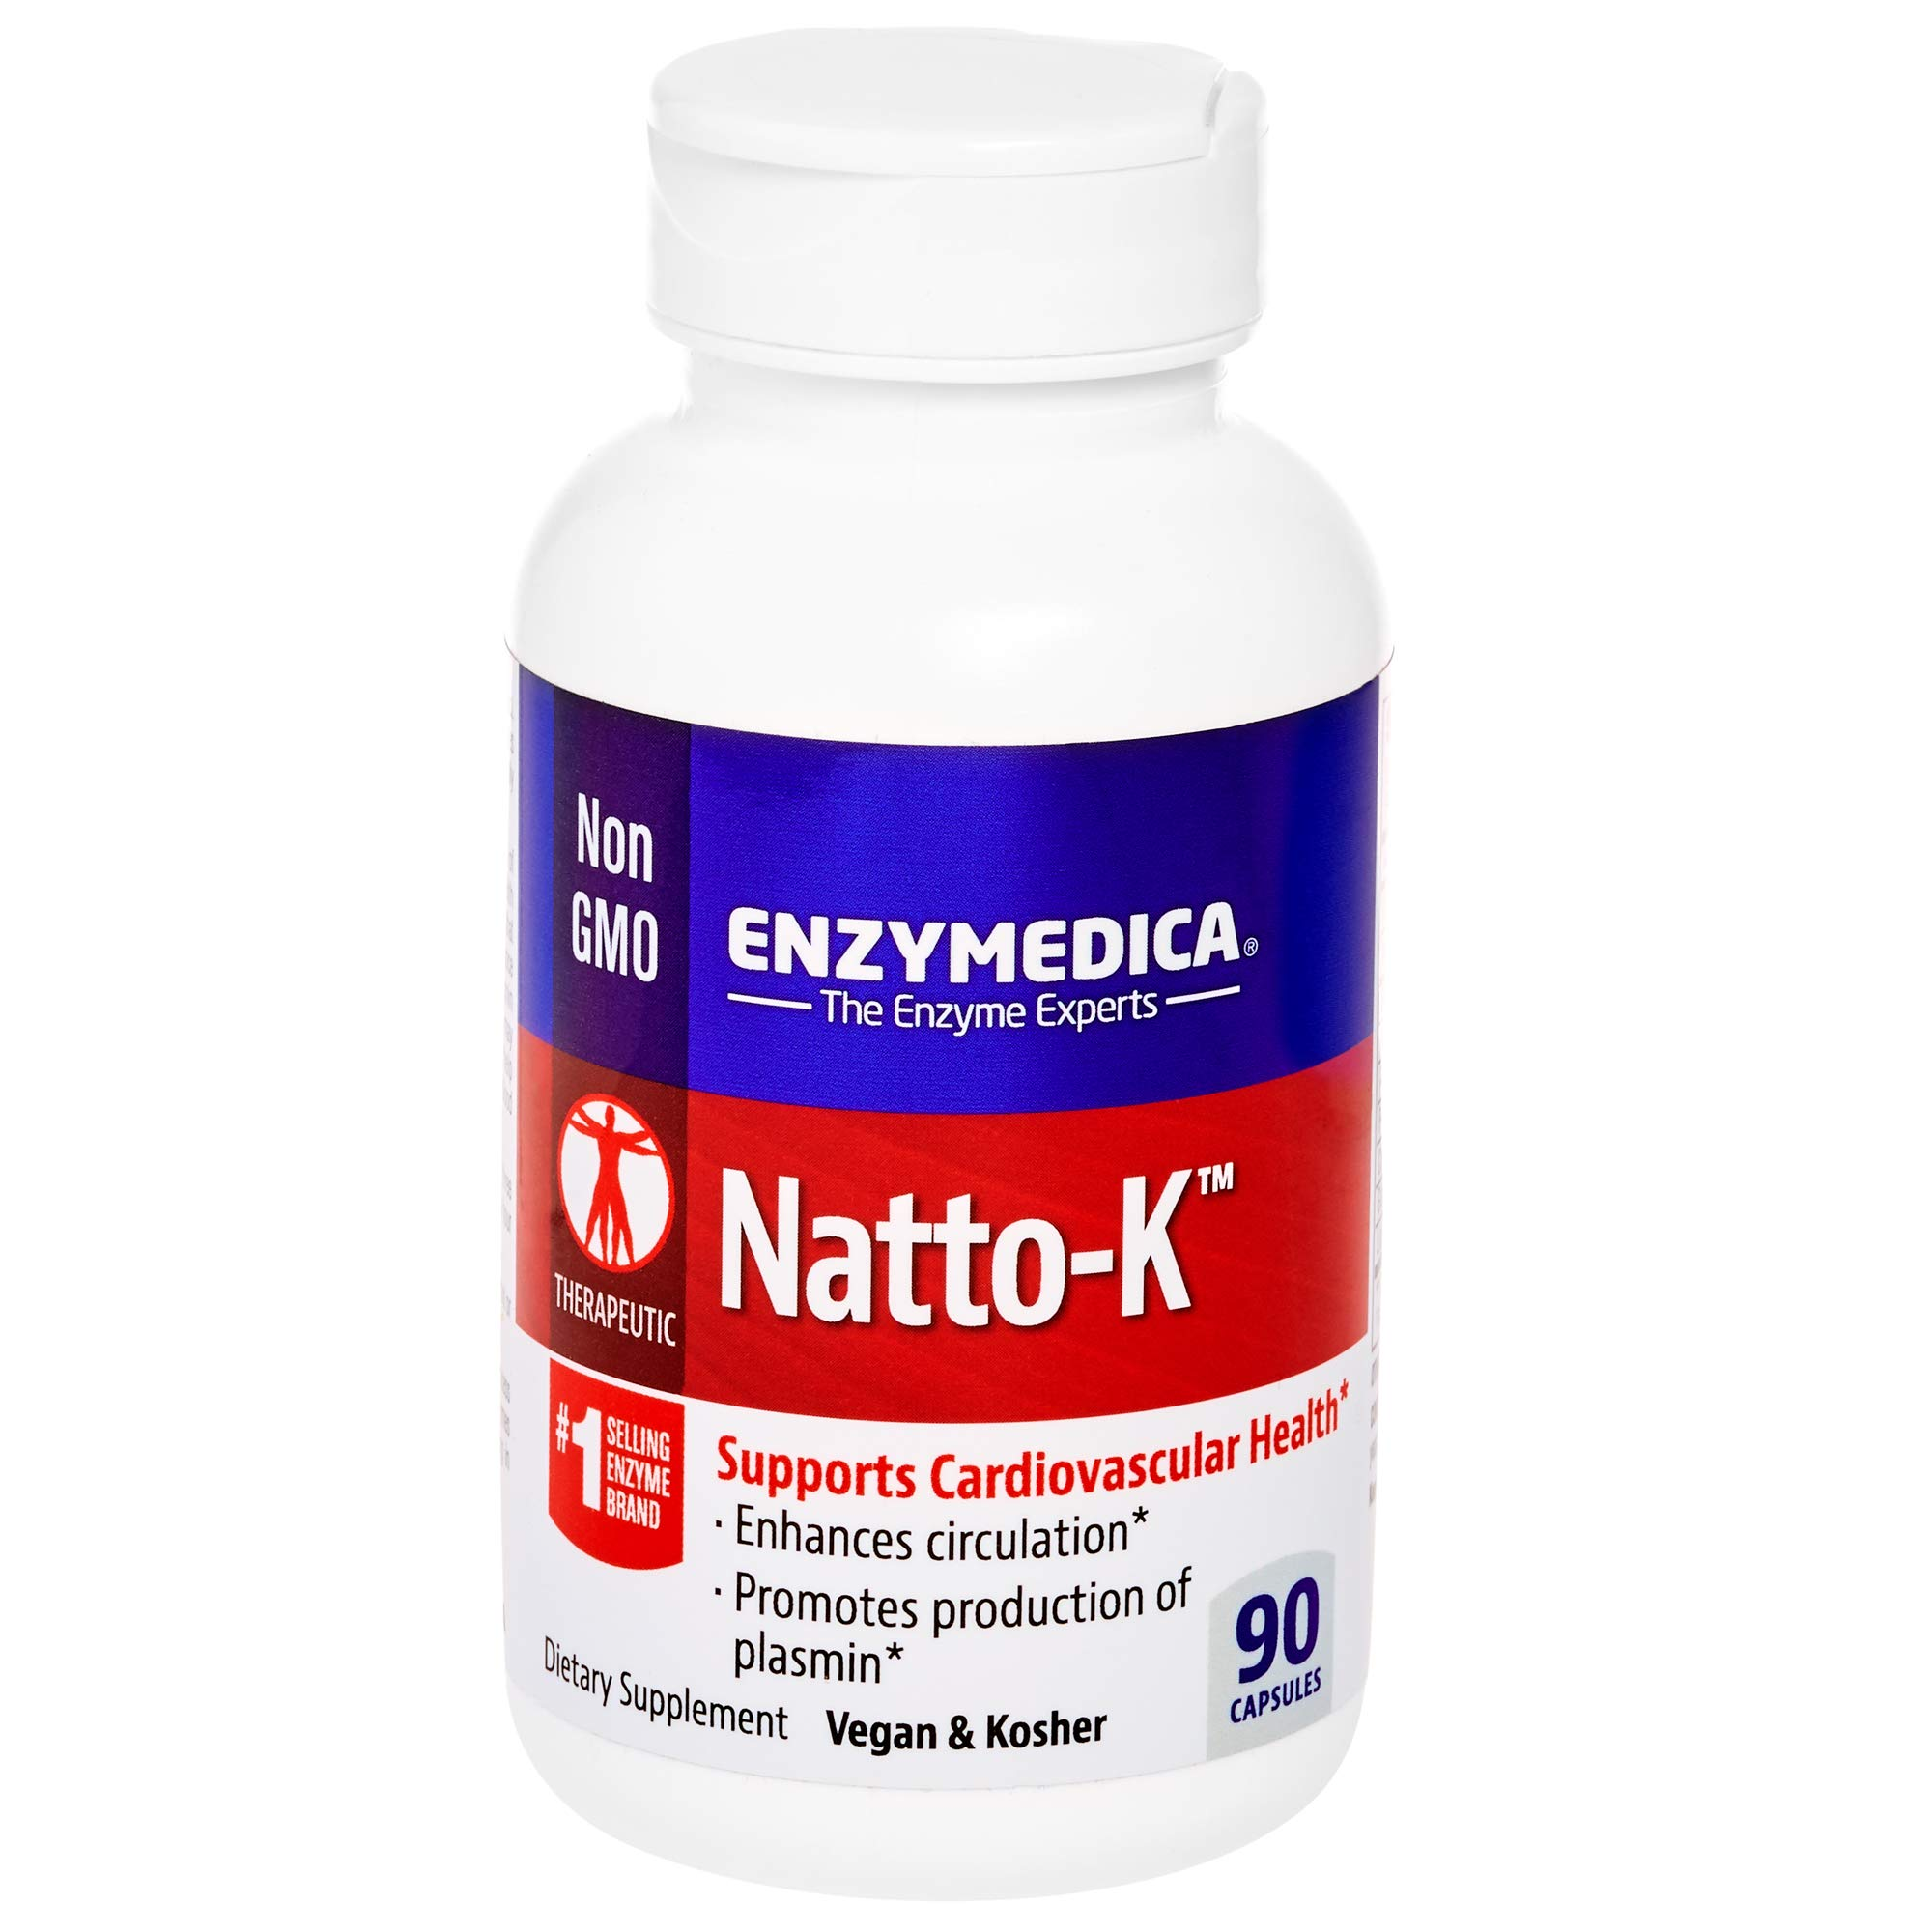 Enzymedica, Natto-K, Enzyme Supplement to Support Cardiovascular Health, Vegan, Kosher, 90 Capsules (90 Servings) (FFP)